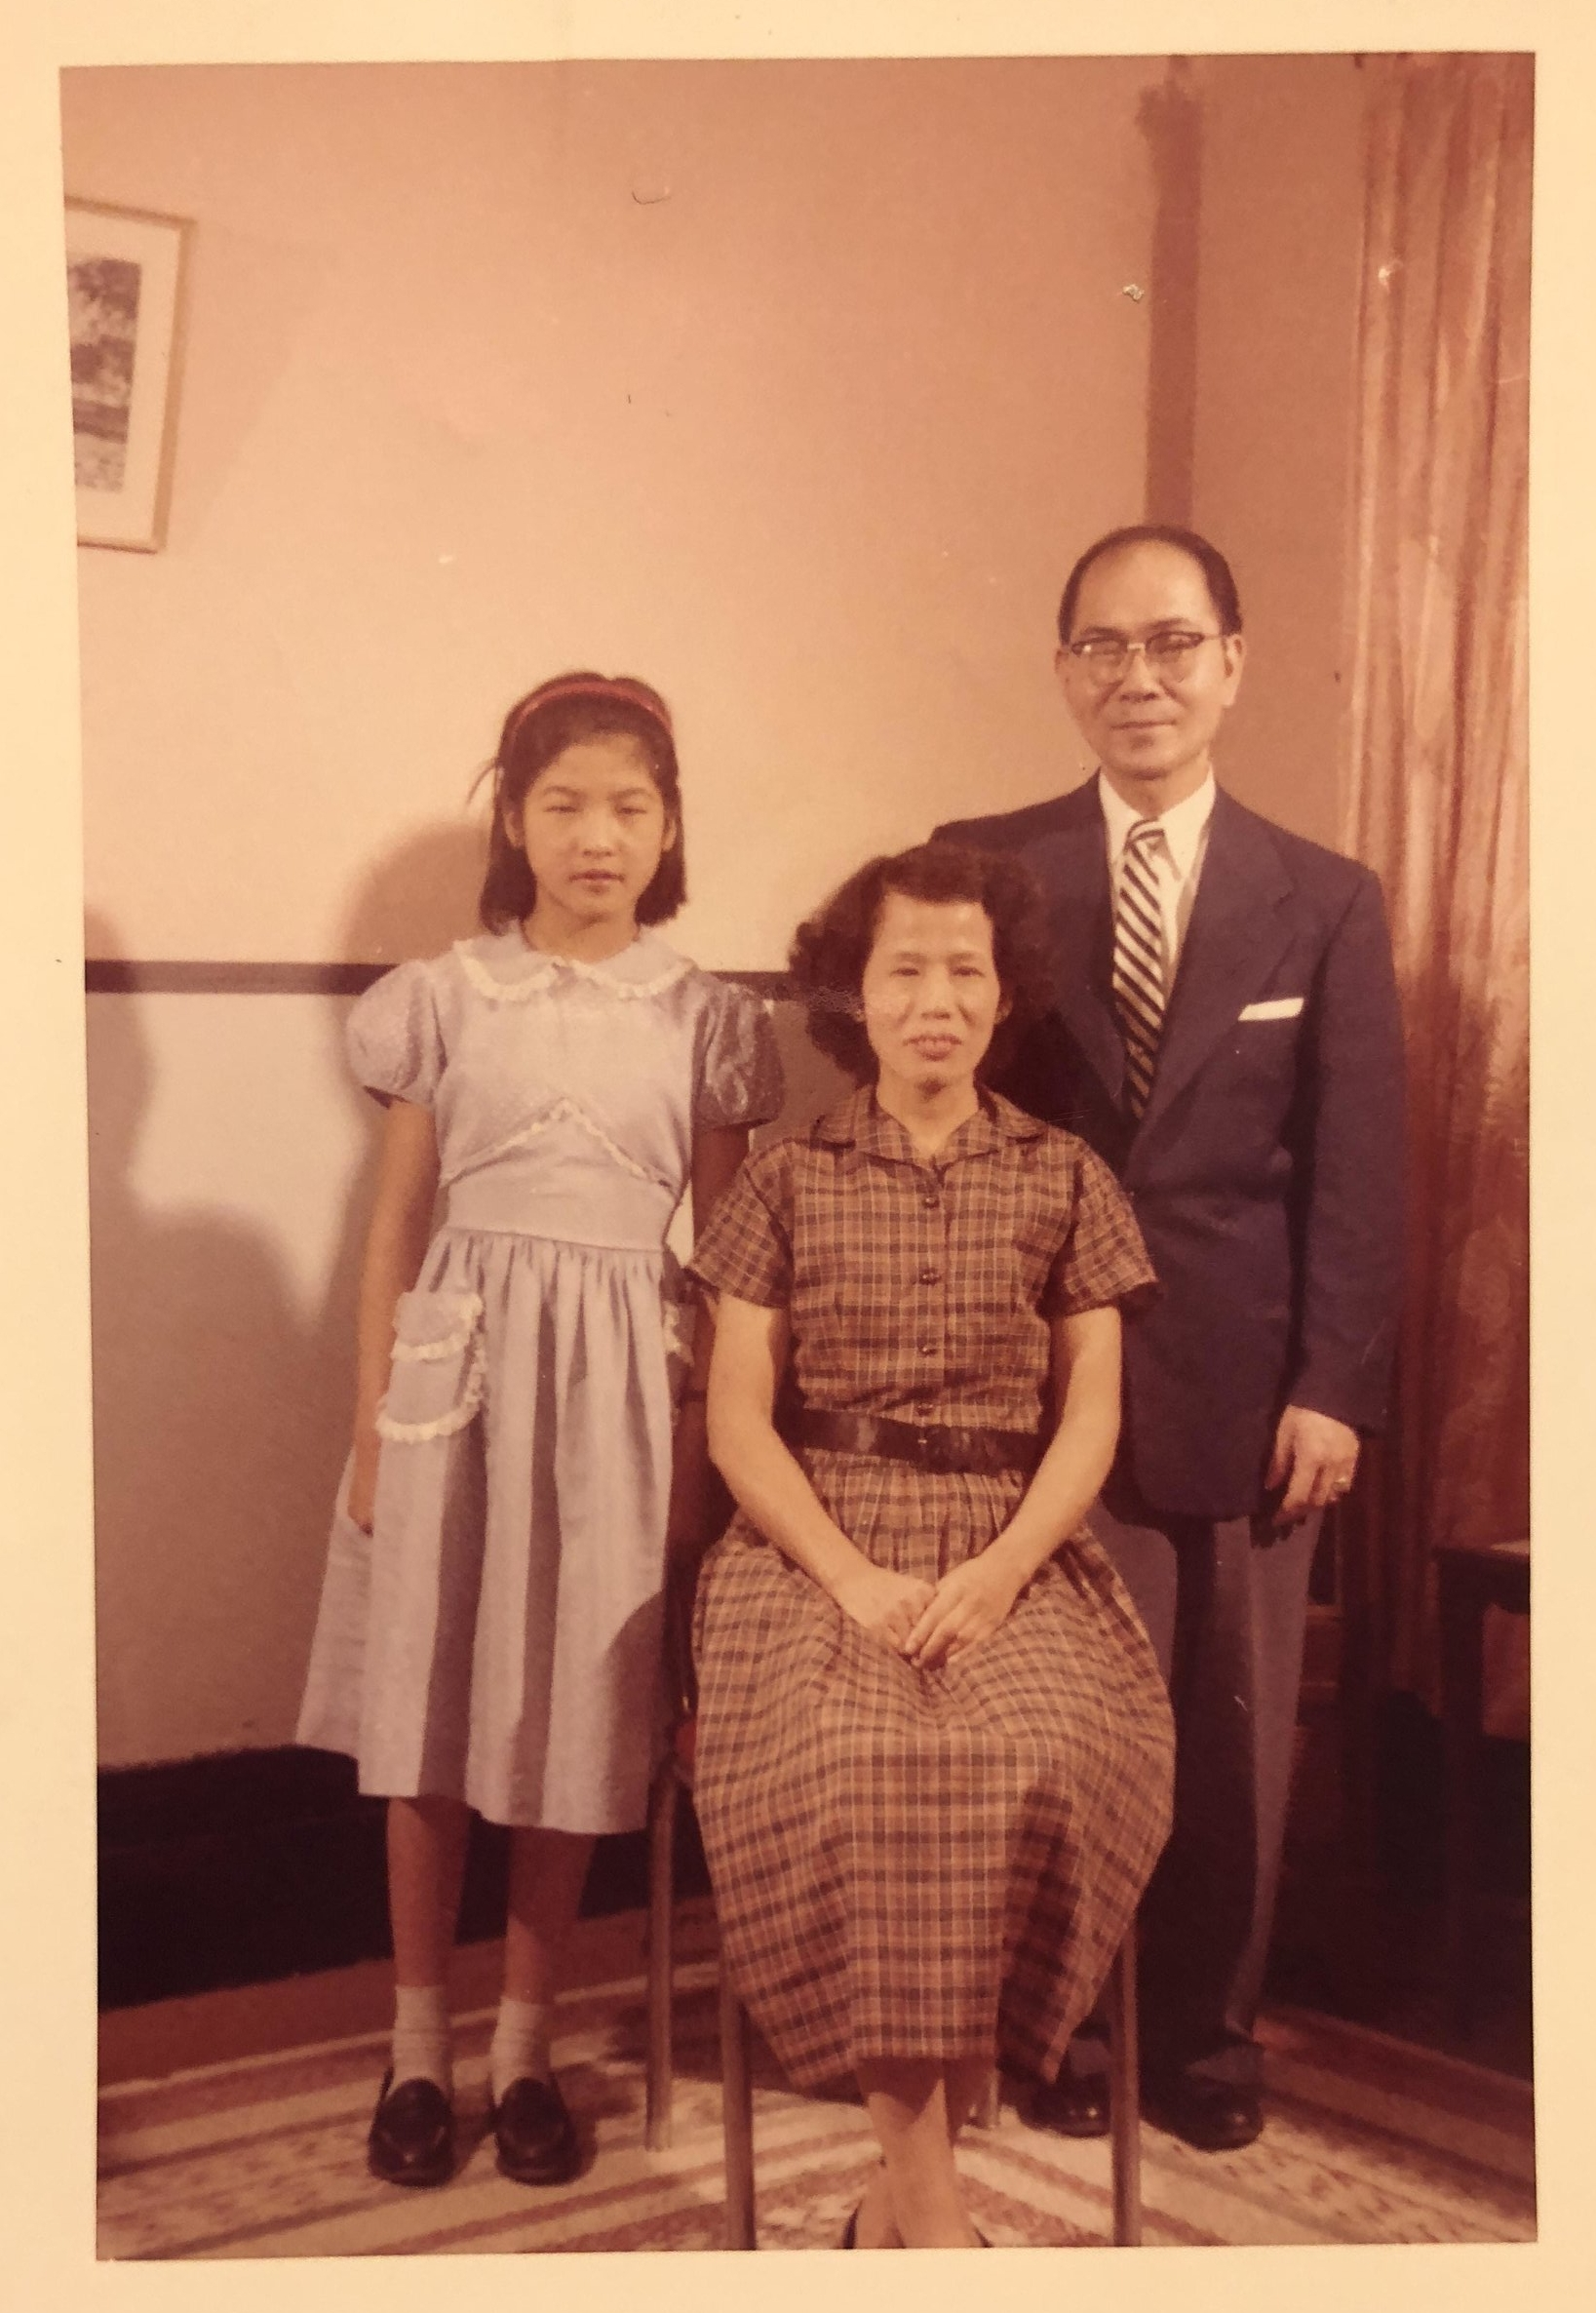 Cynthia Yee, wearing her first store-bought dress, with her parents, May Soon Gee and Walter Yee, 116 Hudson Street, 1959.(photo taken by Eddie Moon Fun Yee)